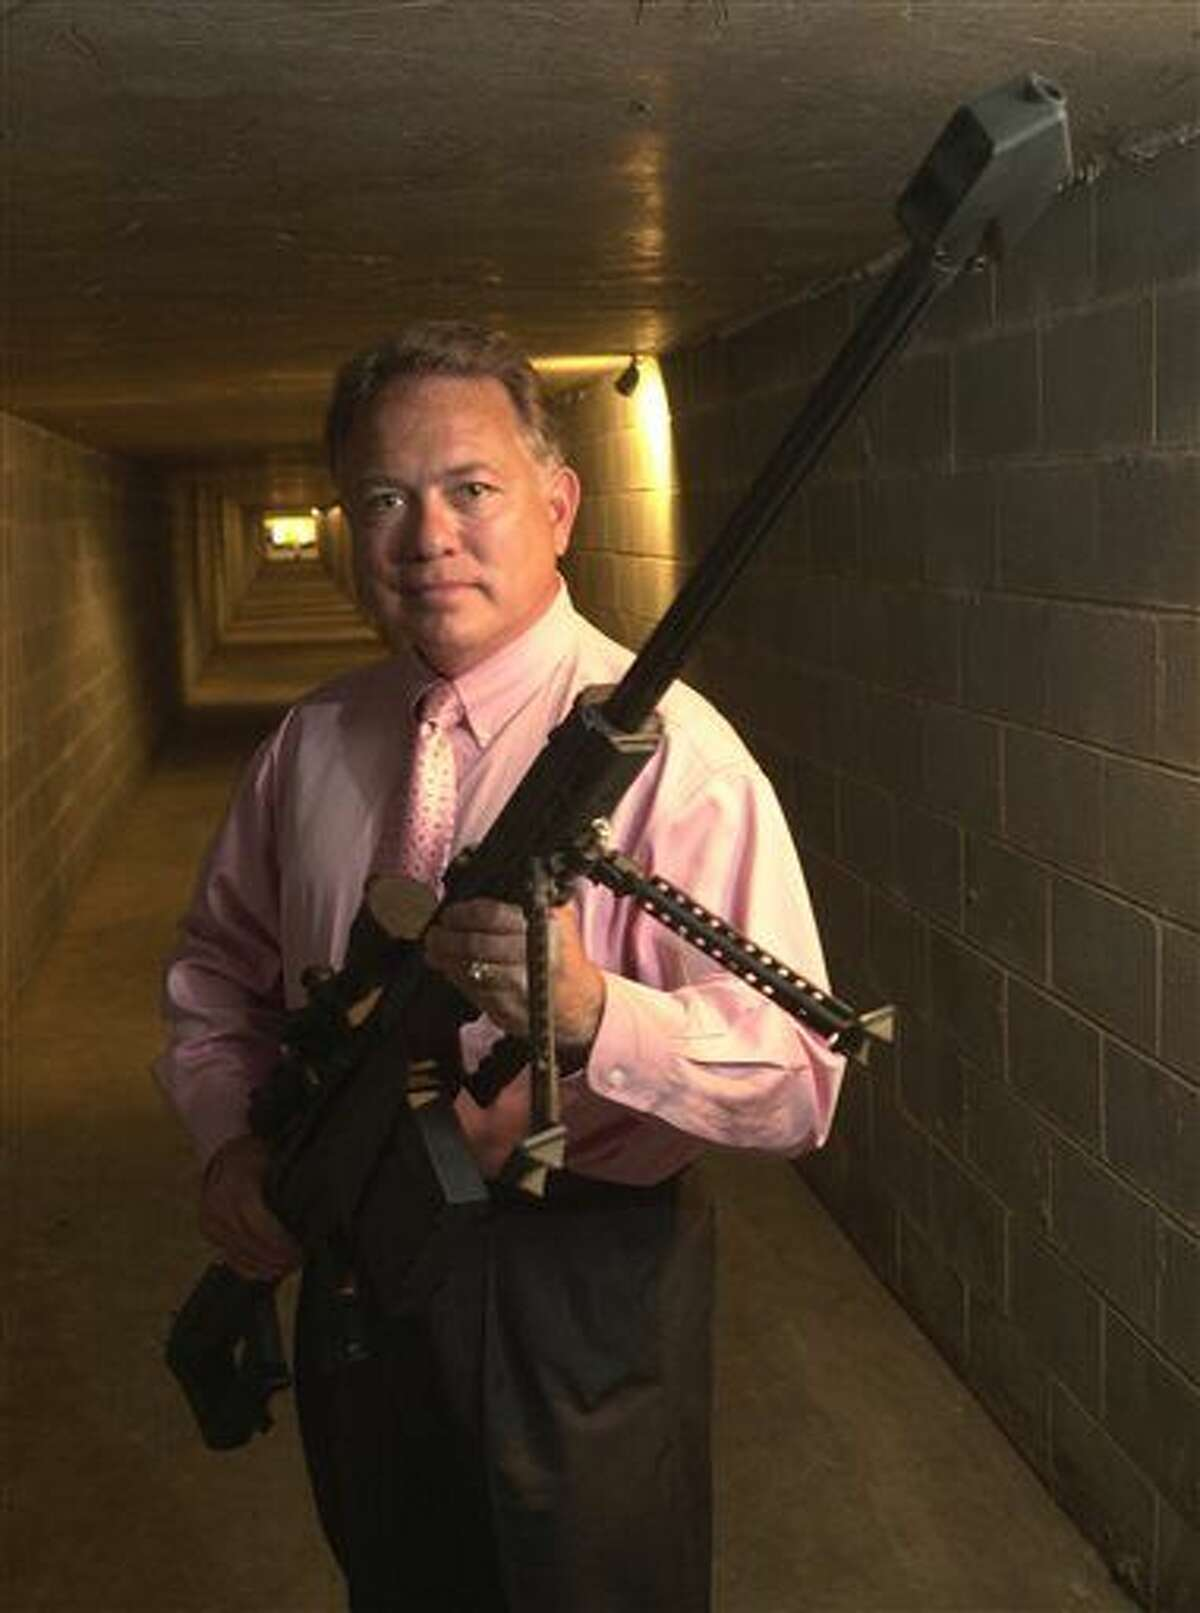 FILE - In this Oct. 21, 2005, file photo, Ronnie Barrett, founder of Barrett Firearms Manufacturing Inc., displays his company's .50-caliber rifle inside a 100 meter test-firing tunnel at his facility in Murfreesboro, Tenn. The state Senate on Wednesday, Feb. 24, 2016, gave final approval to a resolution designating the firearm as Tennessee's official state rifle. (AP Photo/Christopher Berkey, File)